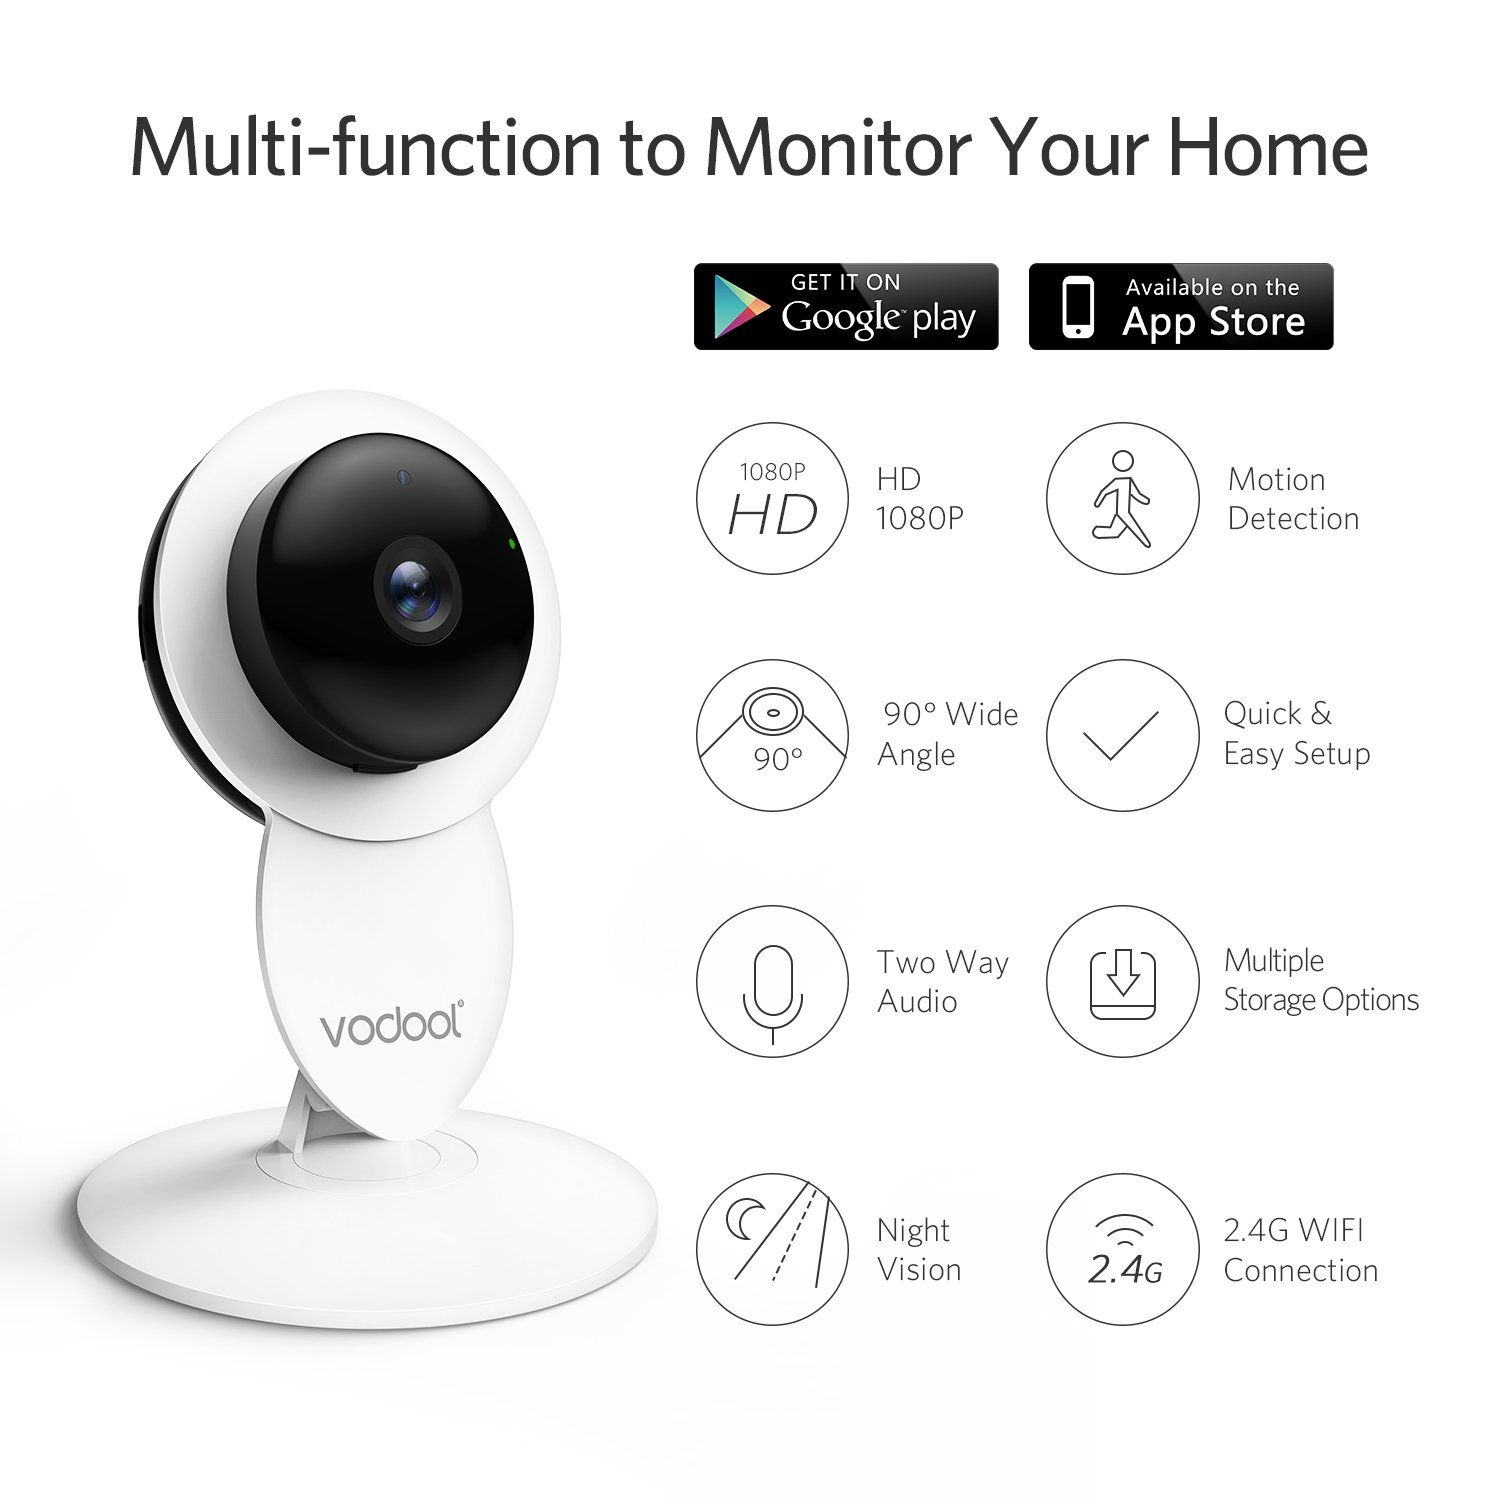 Vodool Home Camera 1080p Hd Smart Wireless Ip Security Camera Surveillance Sy Security Cameras For Home Home Security Camera Systems Camera Surveillance System